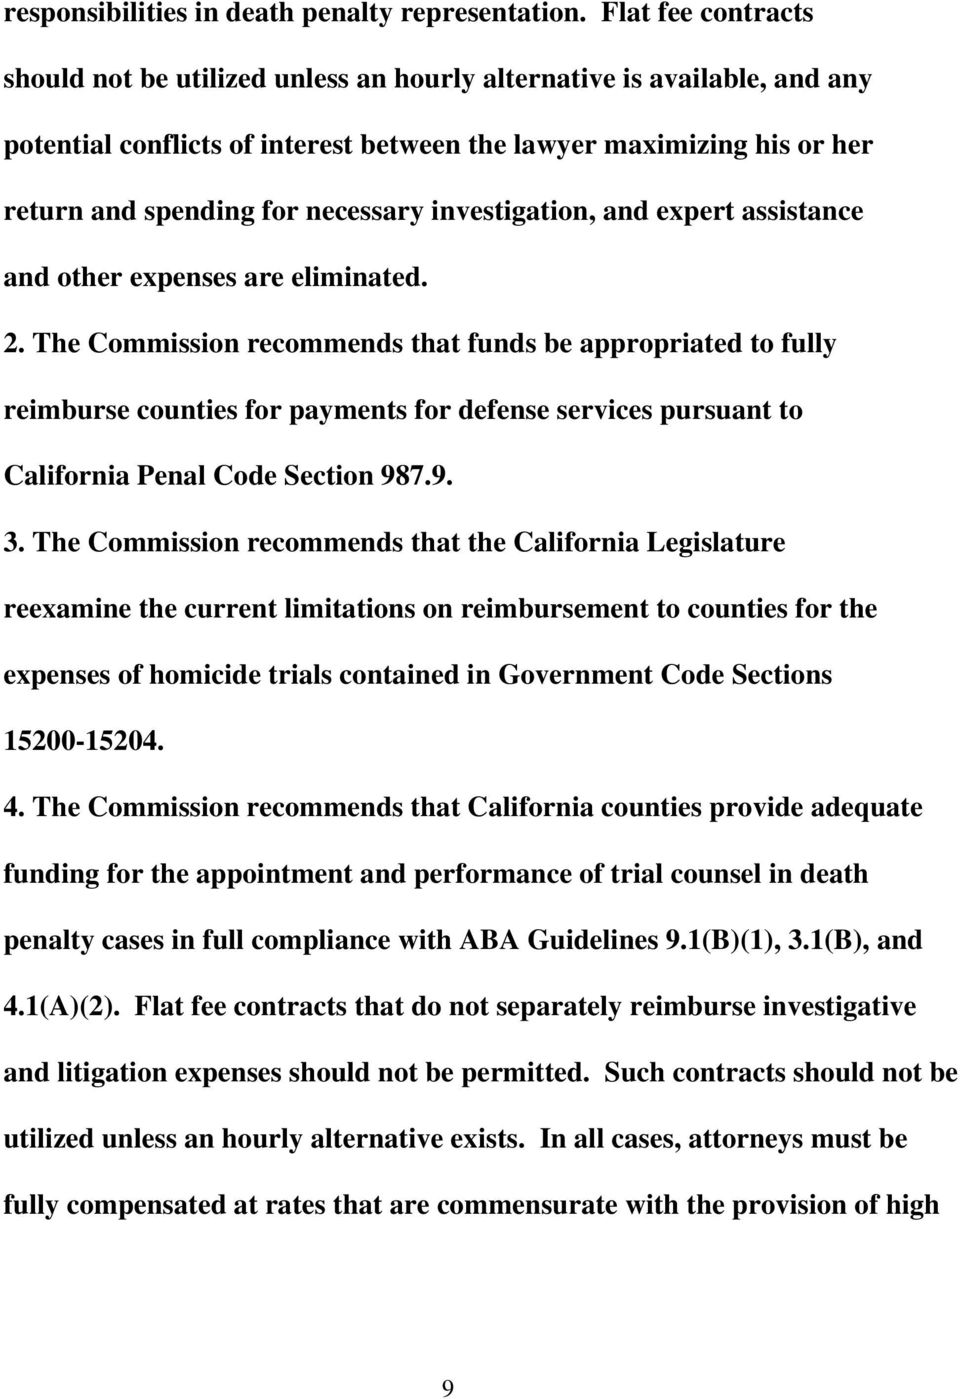 investigation, and expert assistance and other expenses are eliminated. 2.